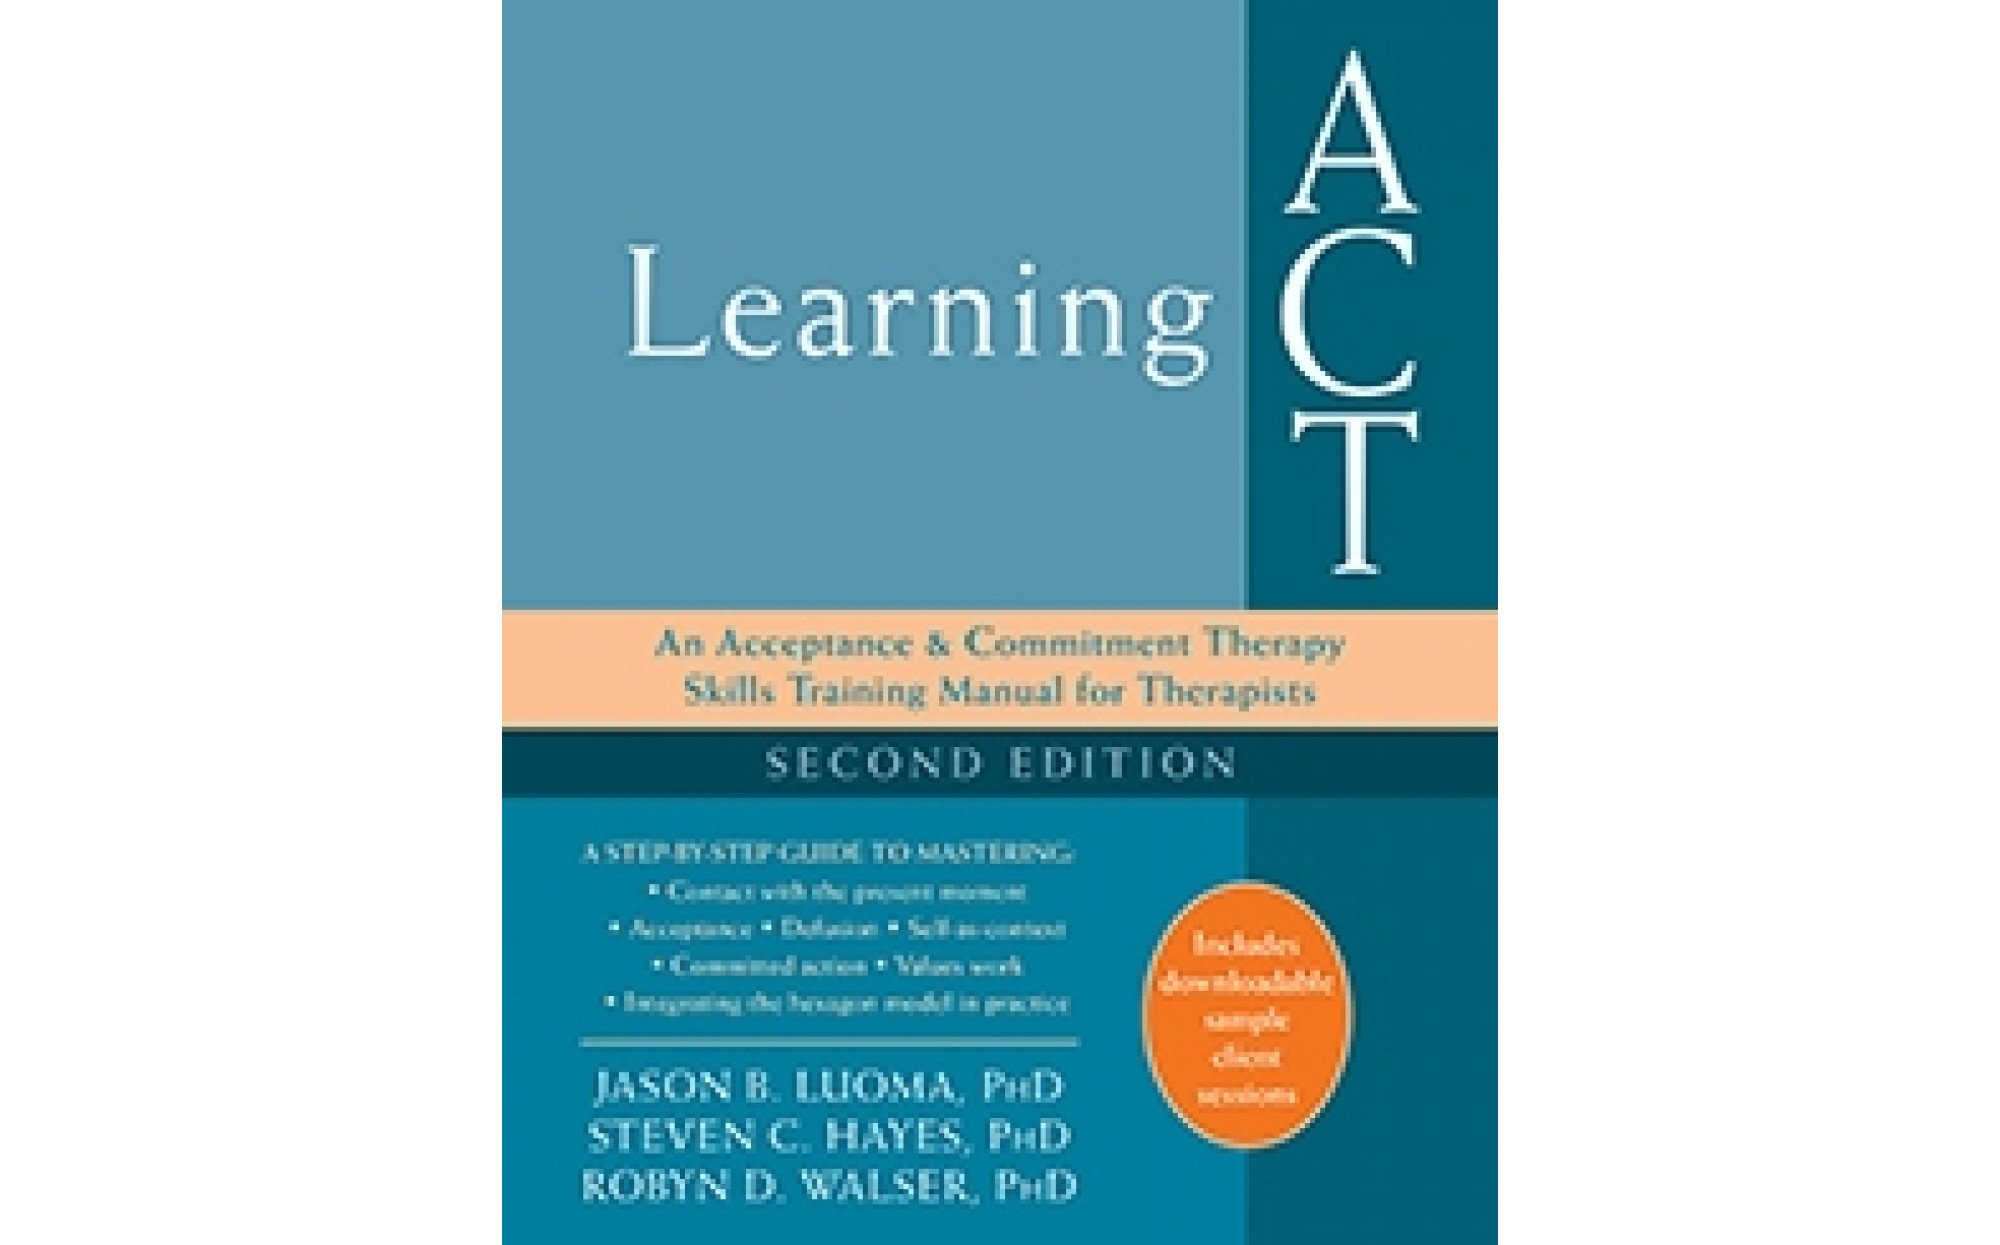 Learning Act An Acceptance And Commitment Therapy Skills Training Manual For Therapists Books